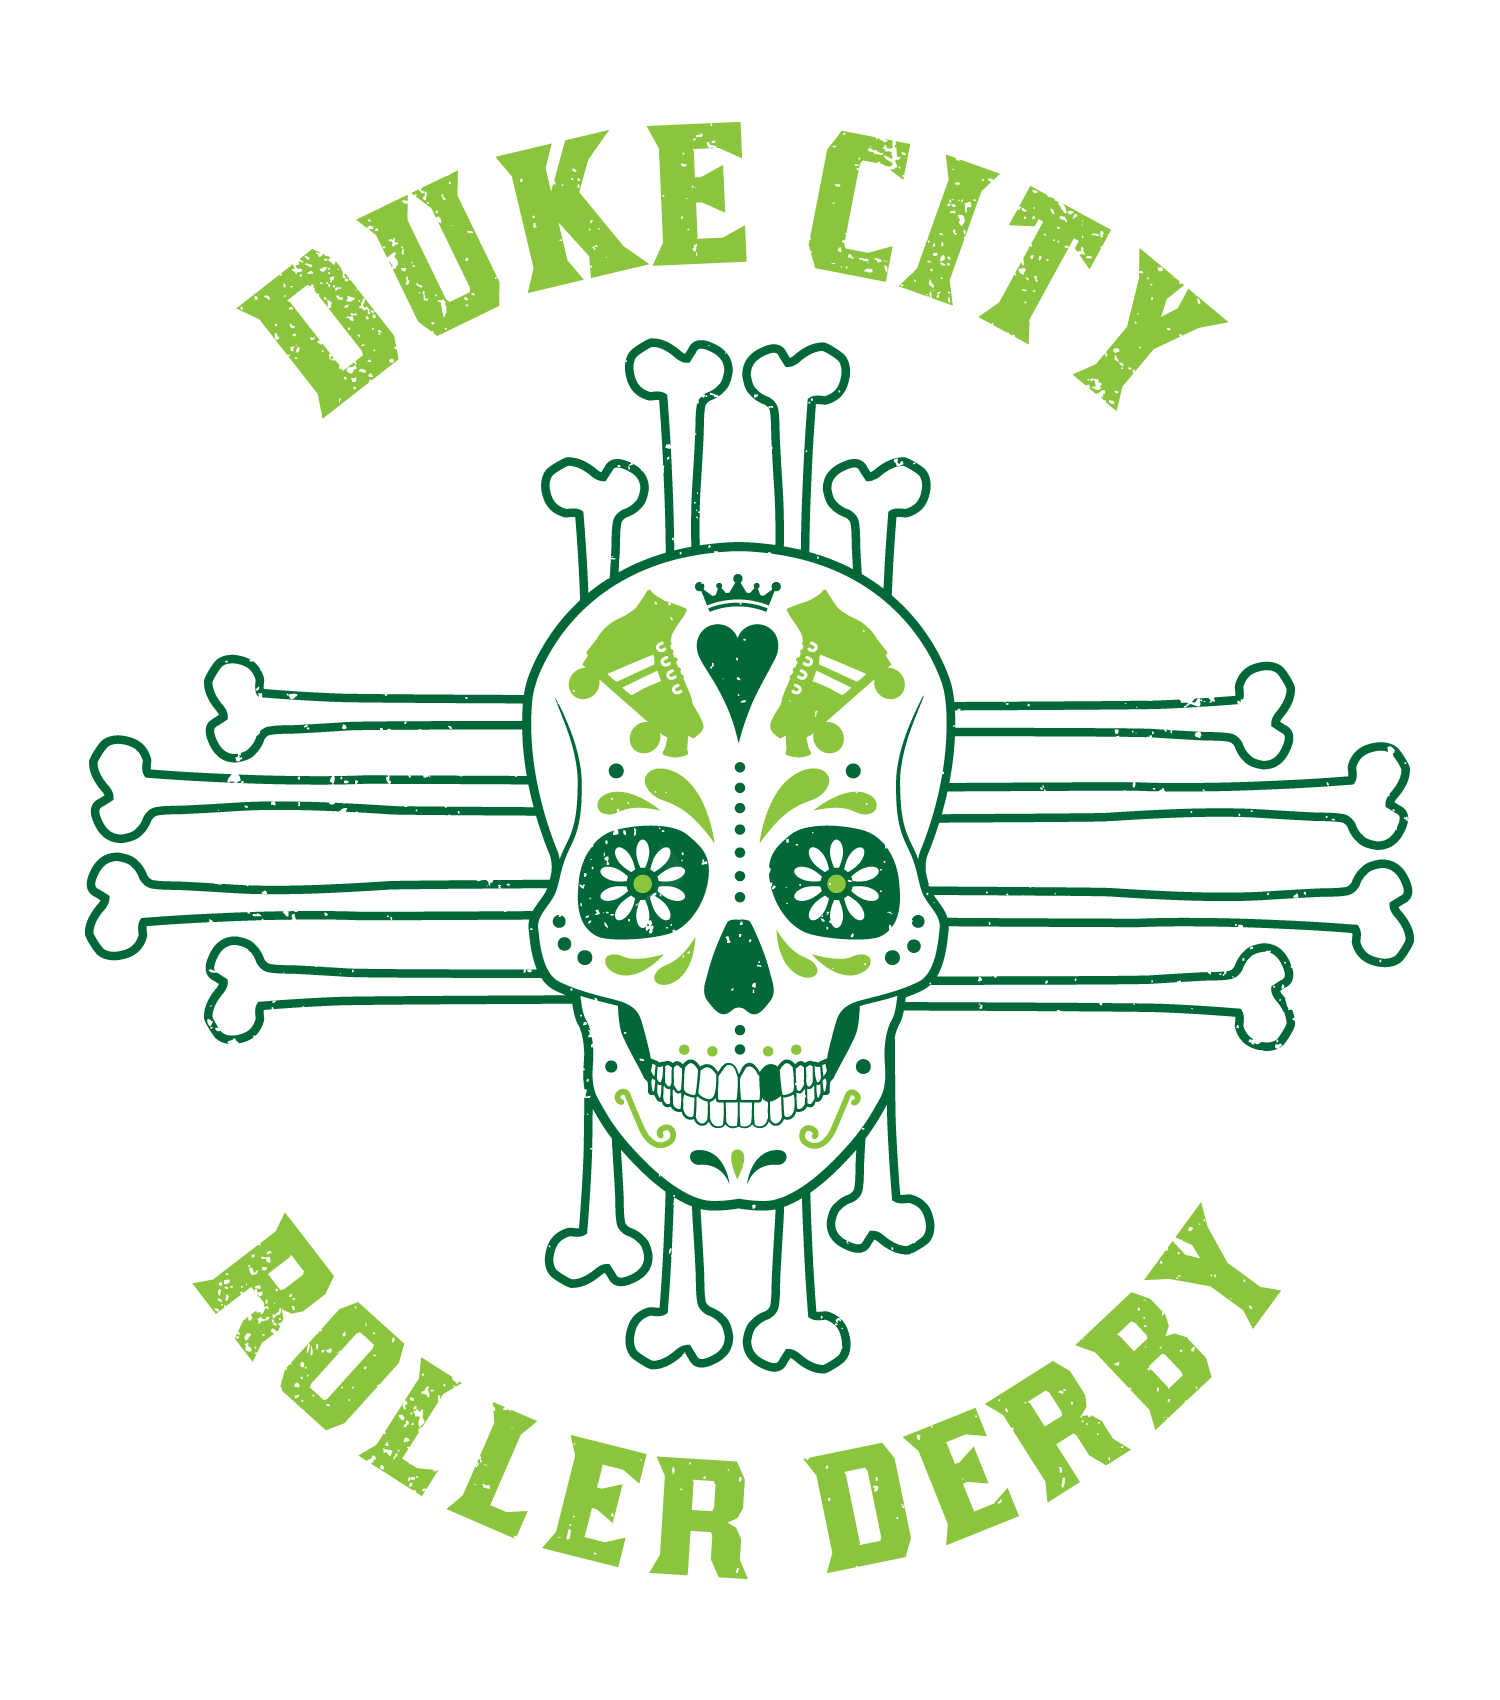 Duke City Roller Derby